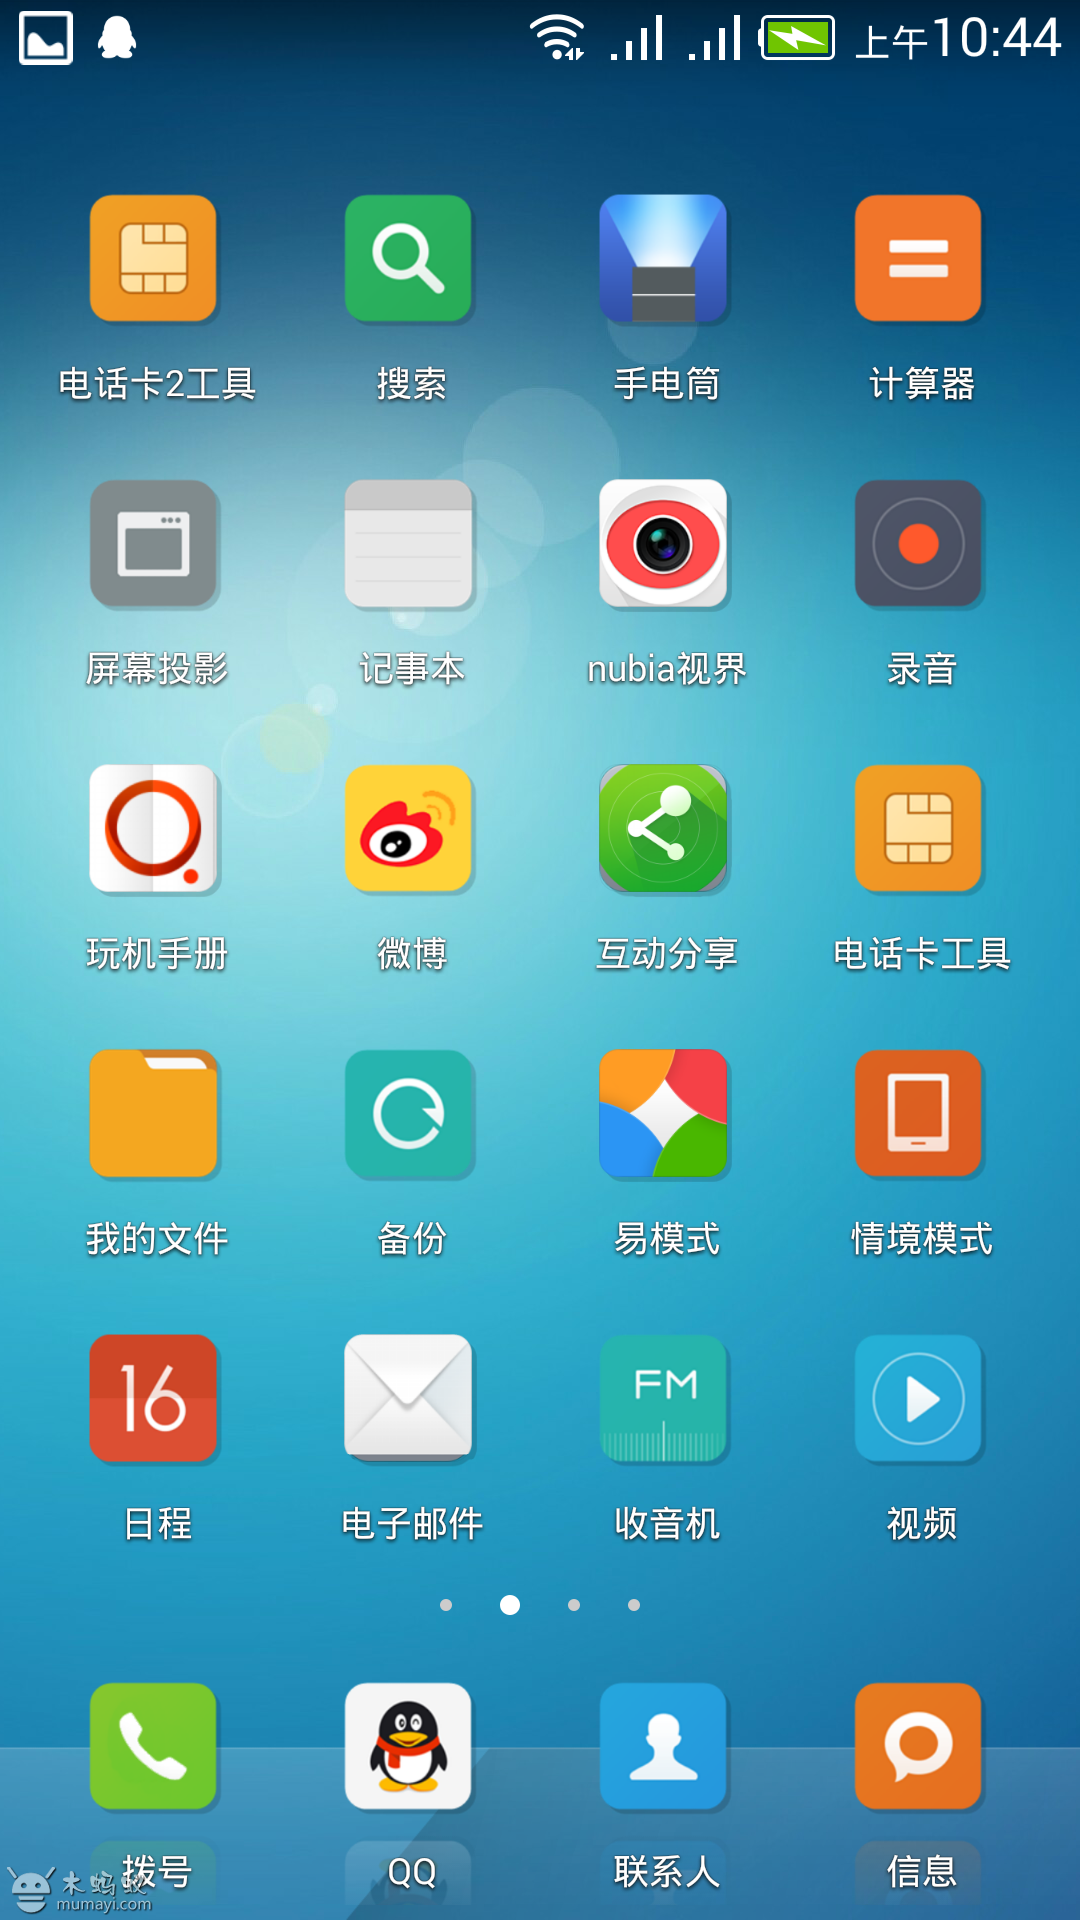 Screenshot_2014-11-16-10-44-15.png